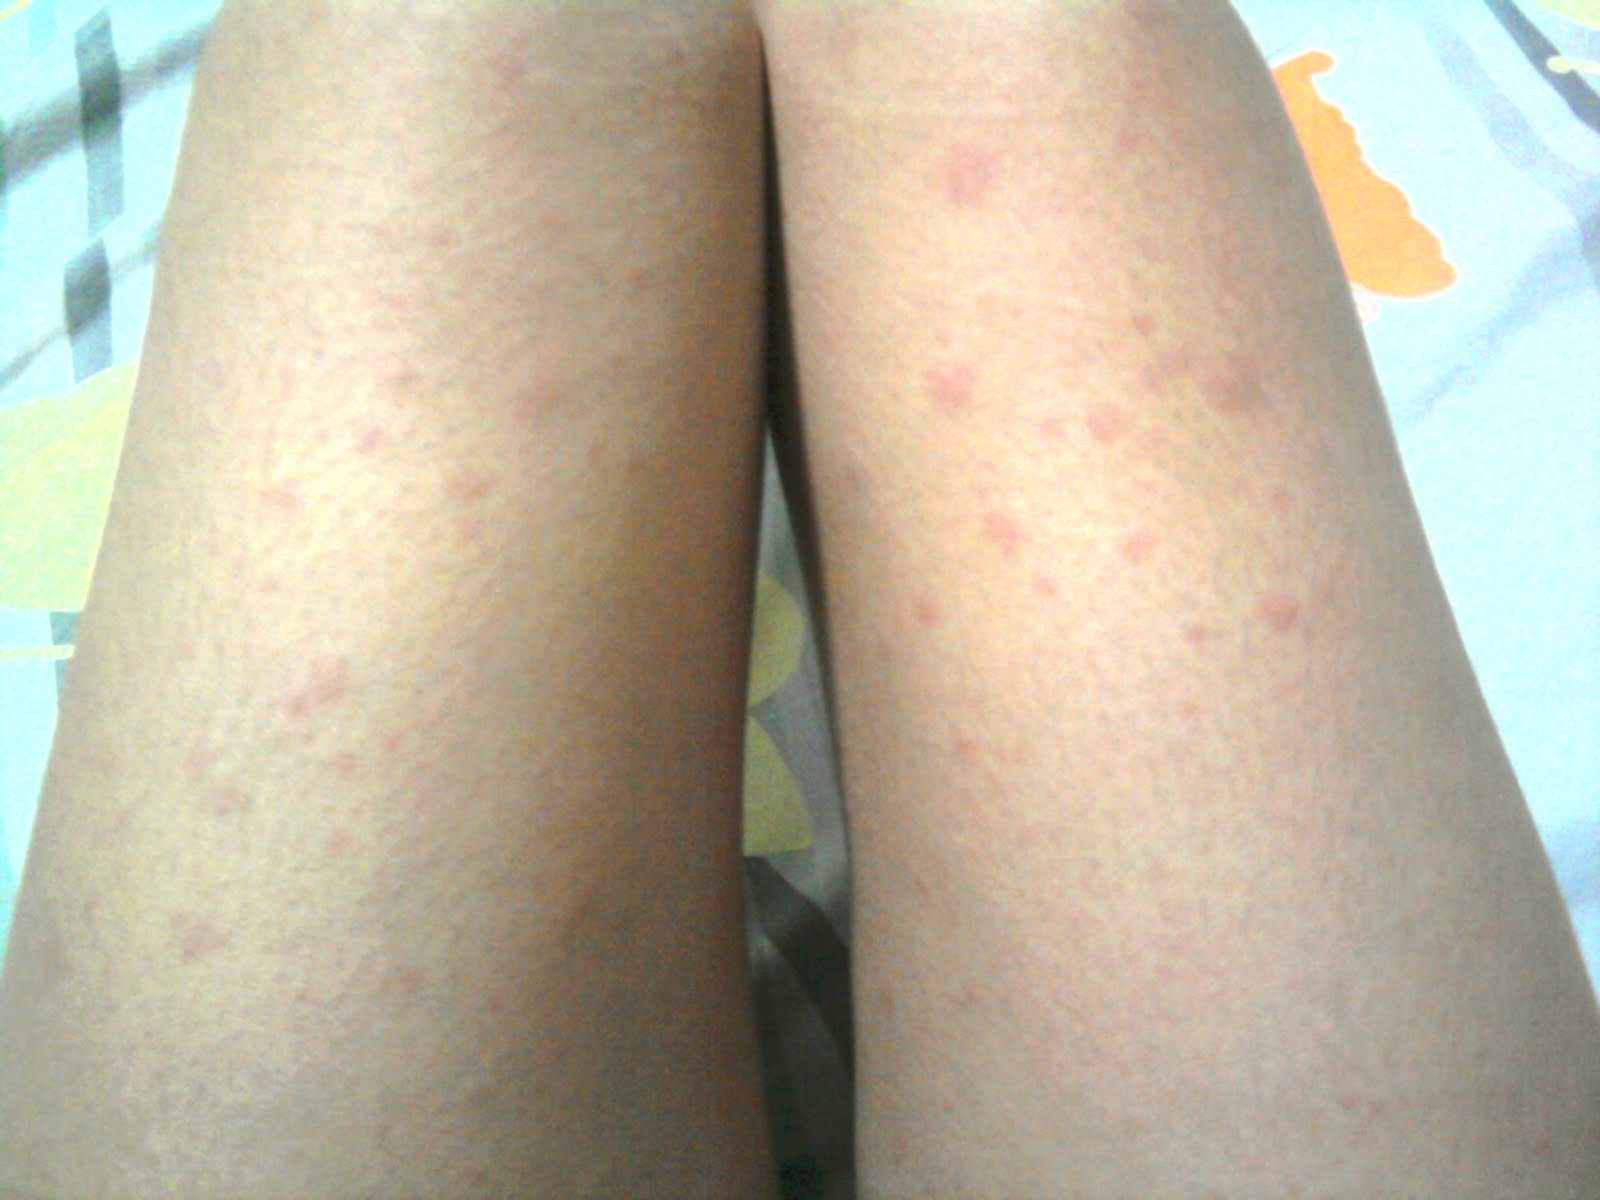 What Are the Causes, Symptoms and Treatment for Hives?